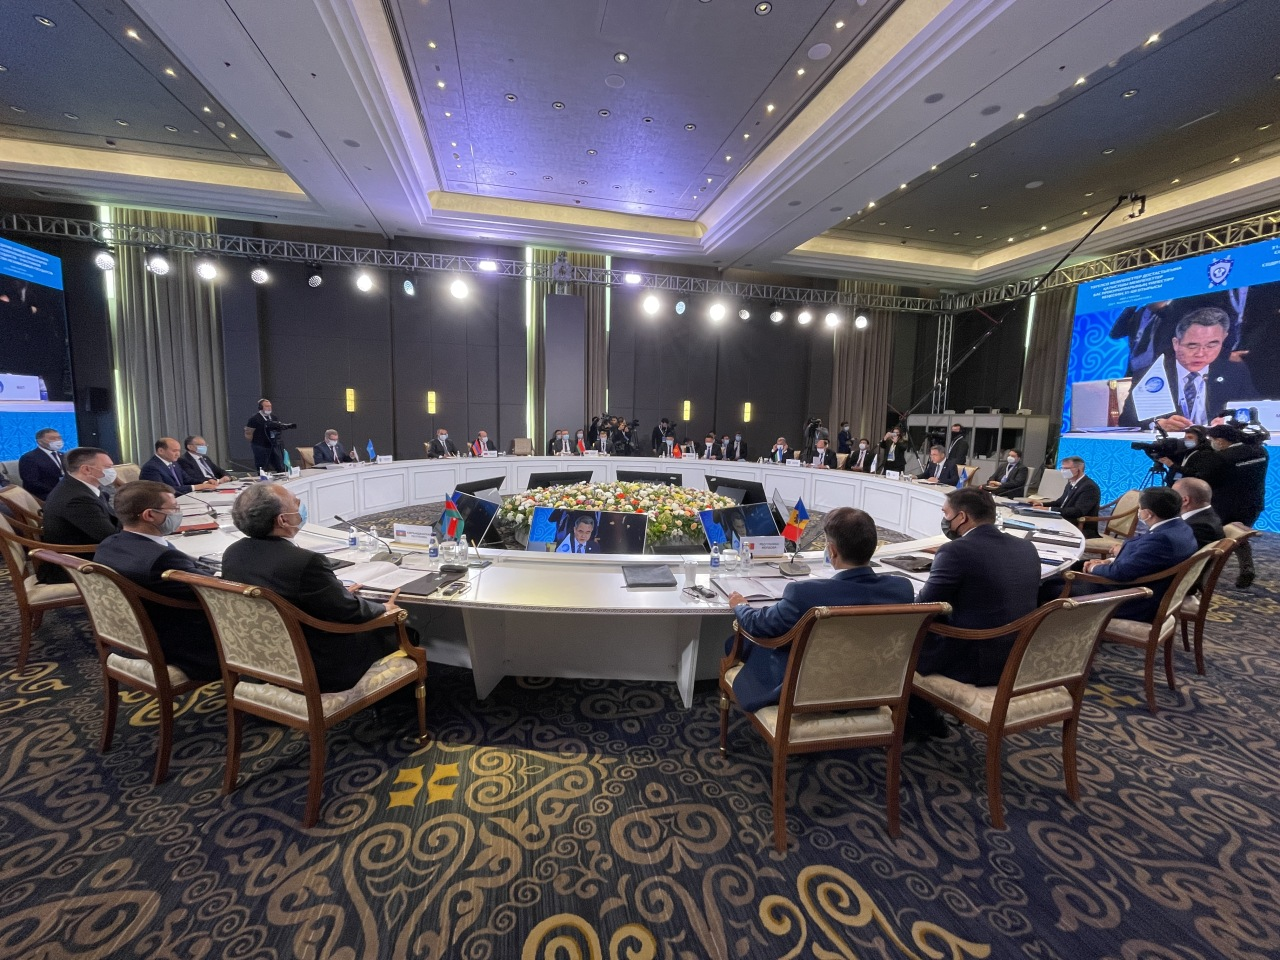 President Hwang delivers a keynote speech at the opening session of the 31st Meeting of the Coordination Council of Prosecutors General of the Member States of the Commonwealth of Independent States. (Courtesy of IAP)